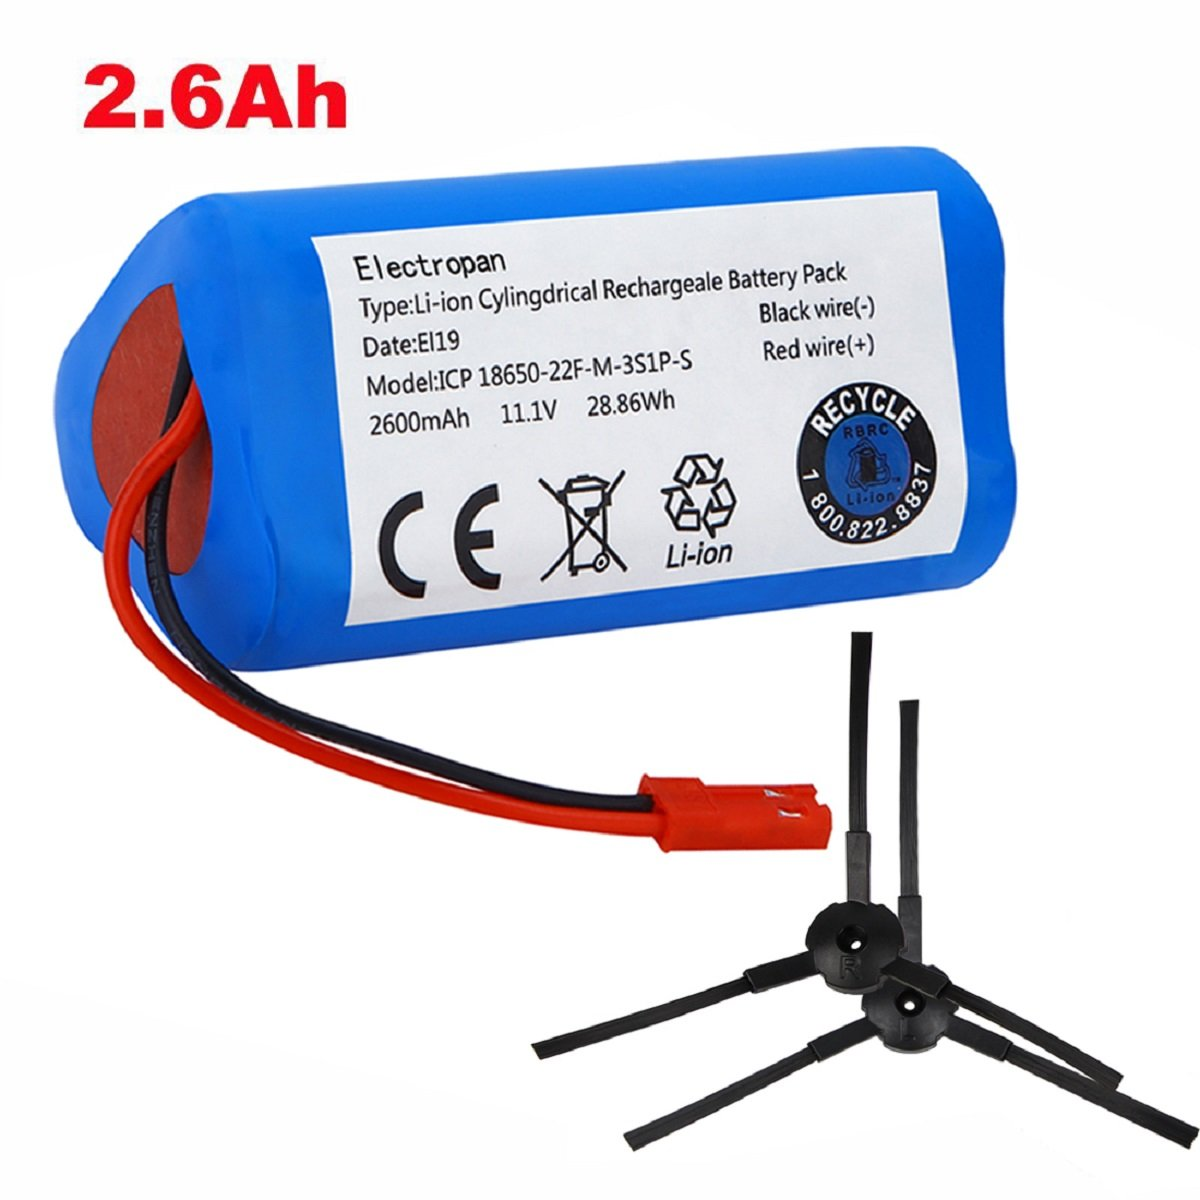 Electropan Robot Vacuum Cleaner Battery 11.1V 2600mAH Replacement for ILIFE V3s V3s Pro V5s Pro V5 V5s